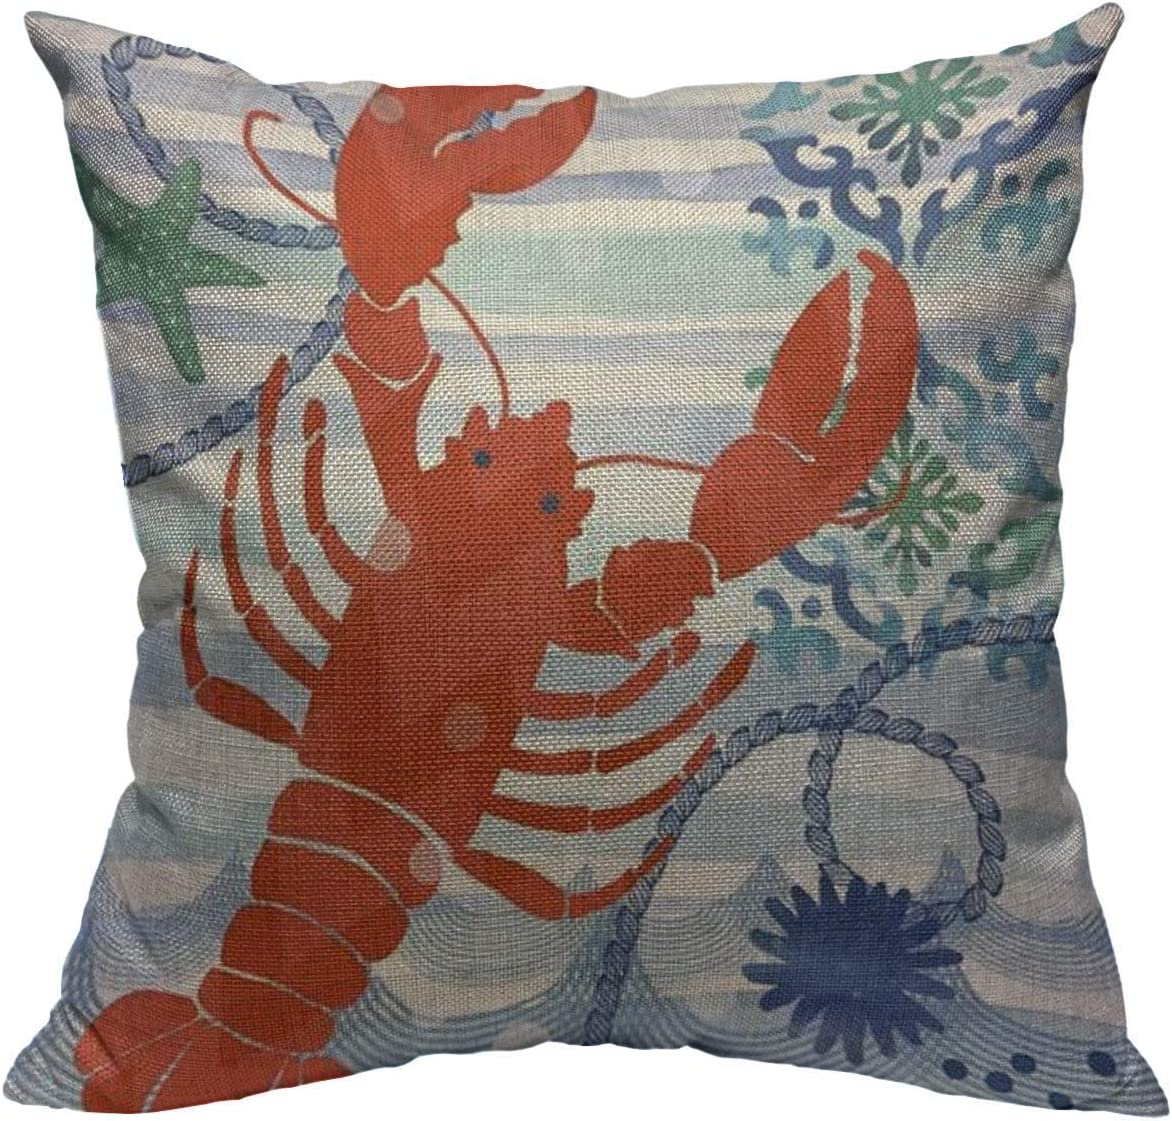 Lobster pillow. I would design a whole